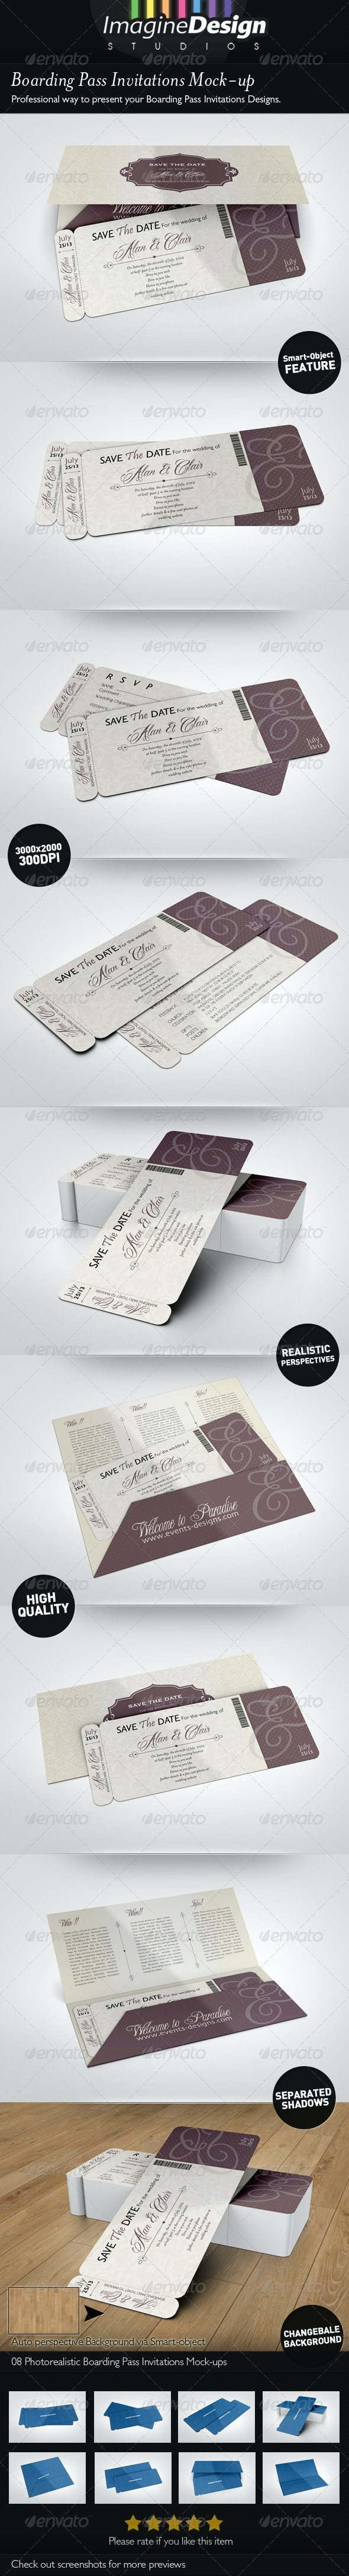 Boarding Pass Invitations Mock-up - Miscellaneous Print